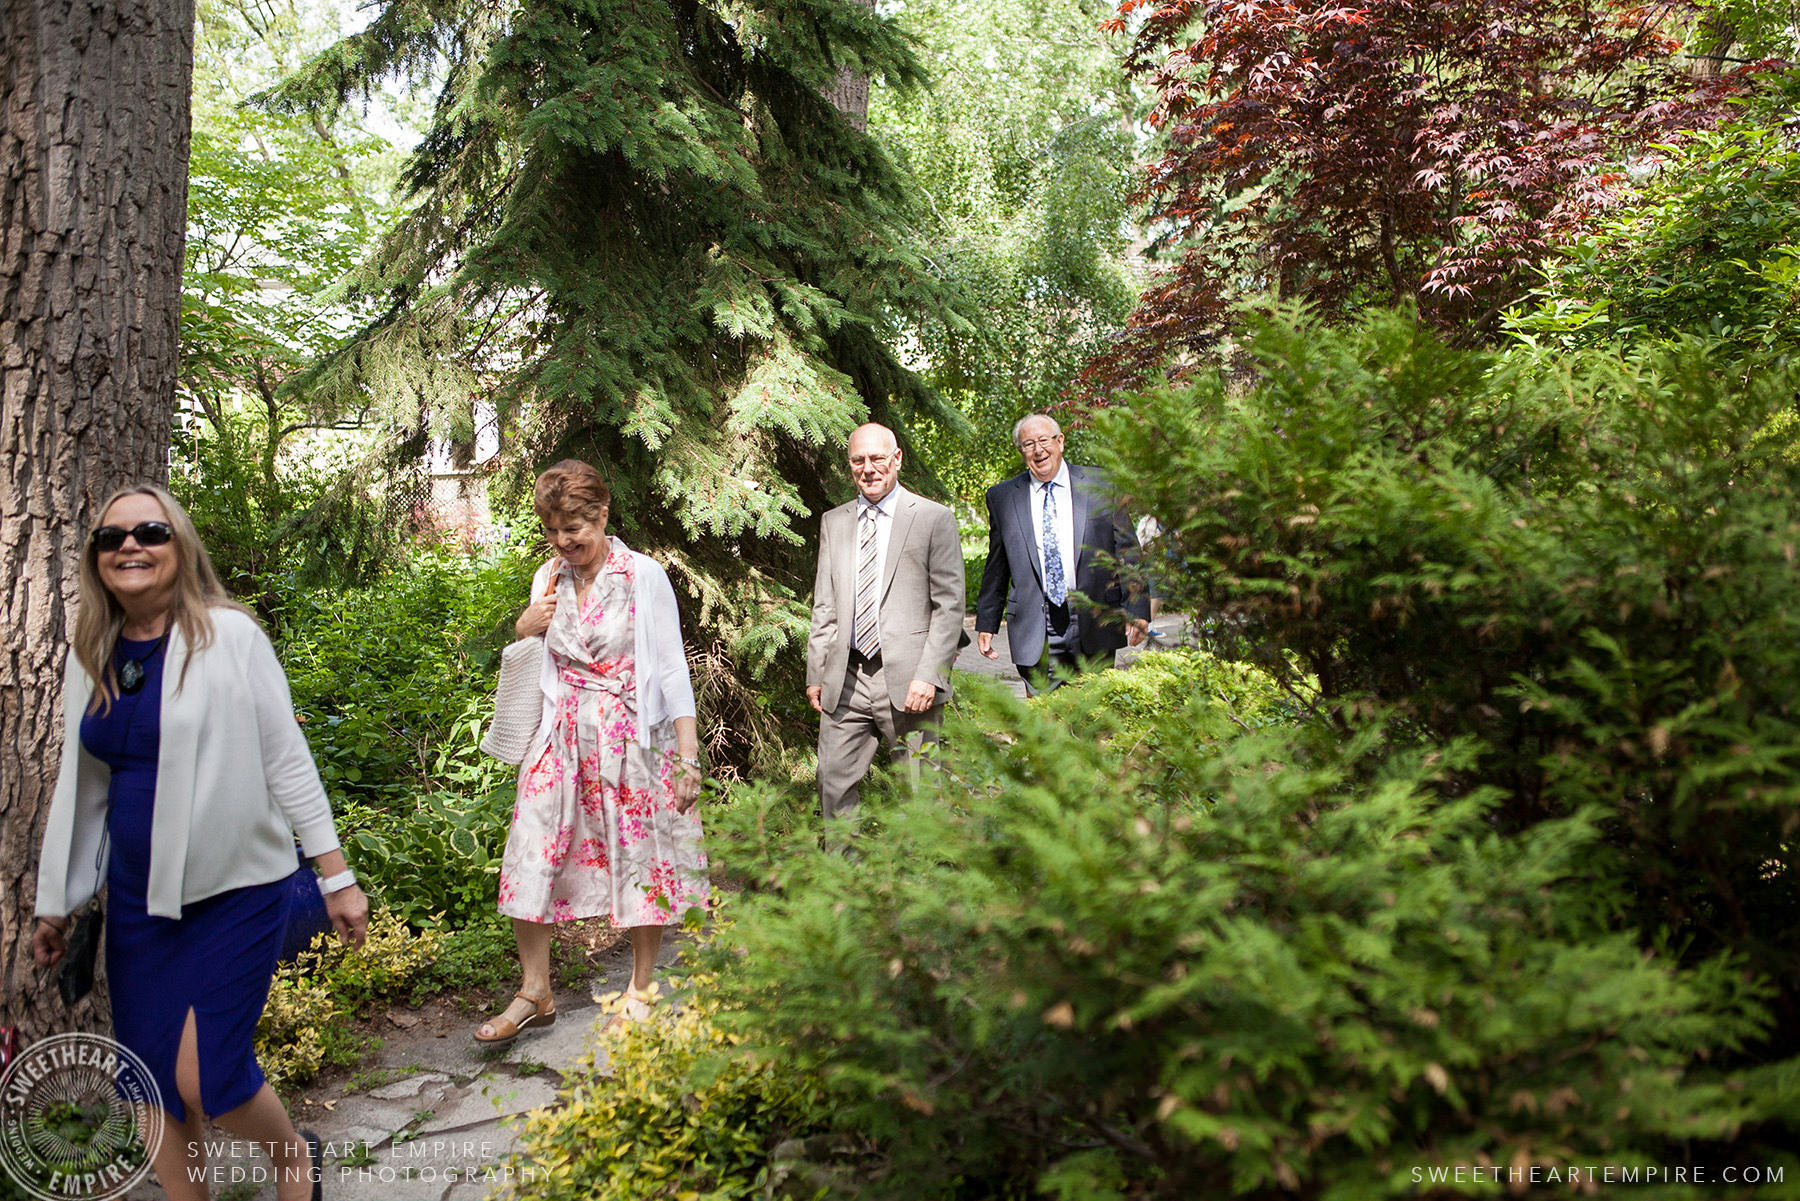 Guests arriving for the wedding, Toronto Island Elopement